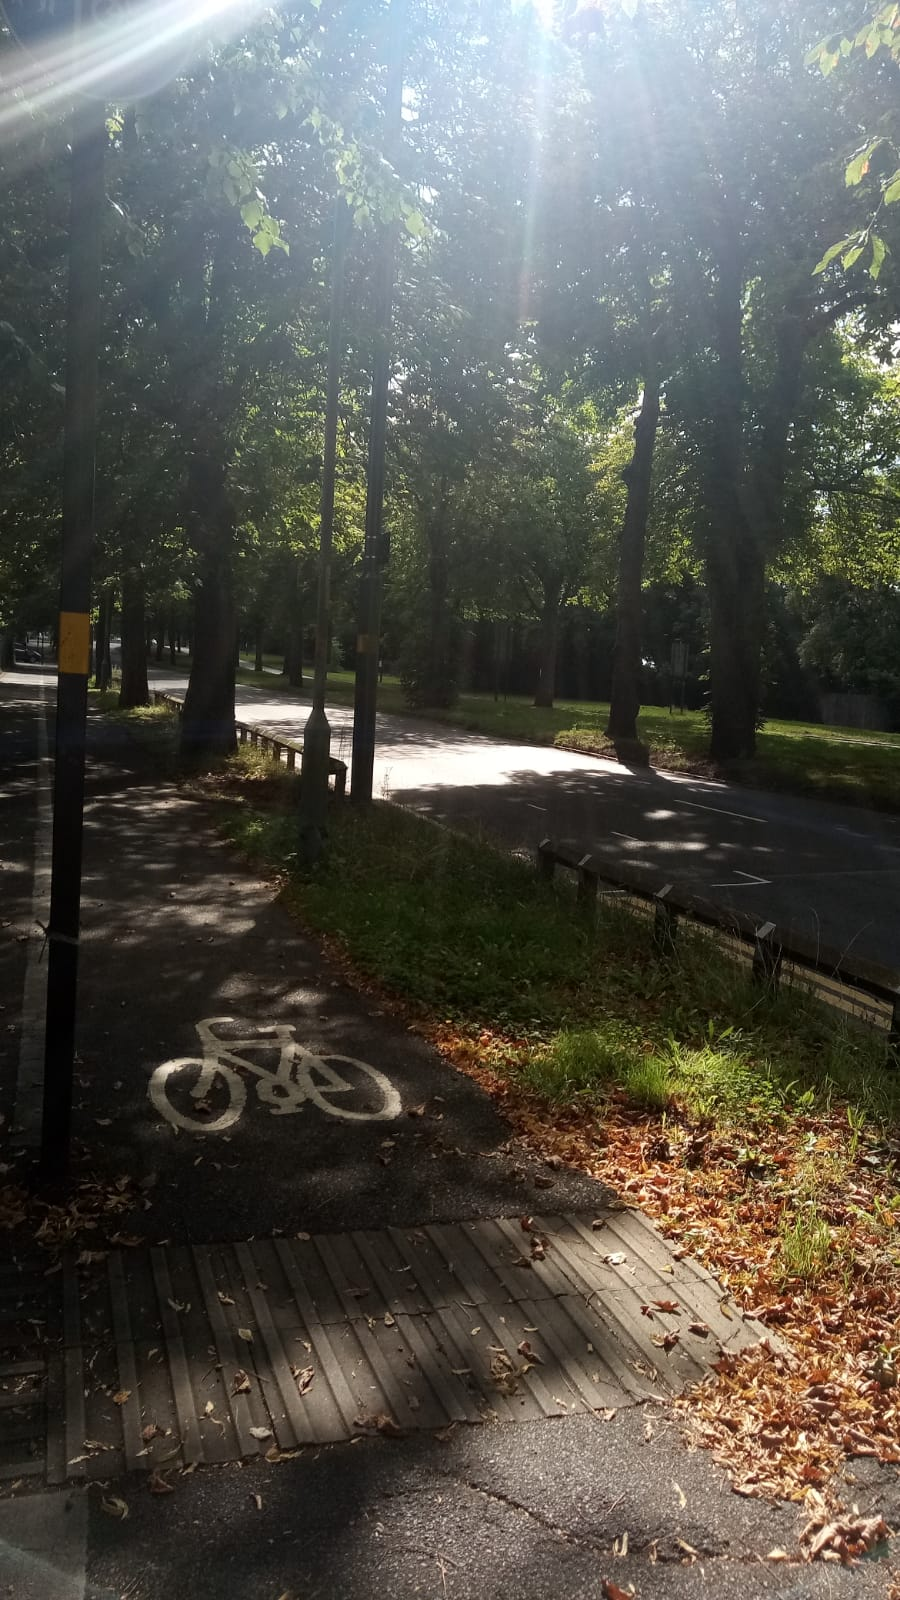 Northfield Cycle lane by Orthopaedic hospital